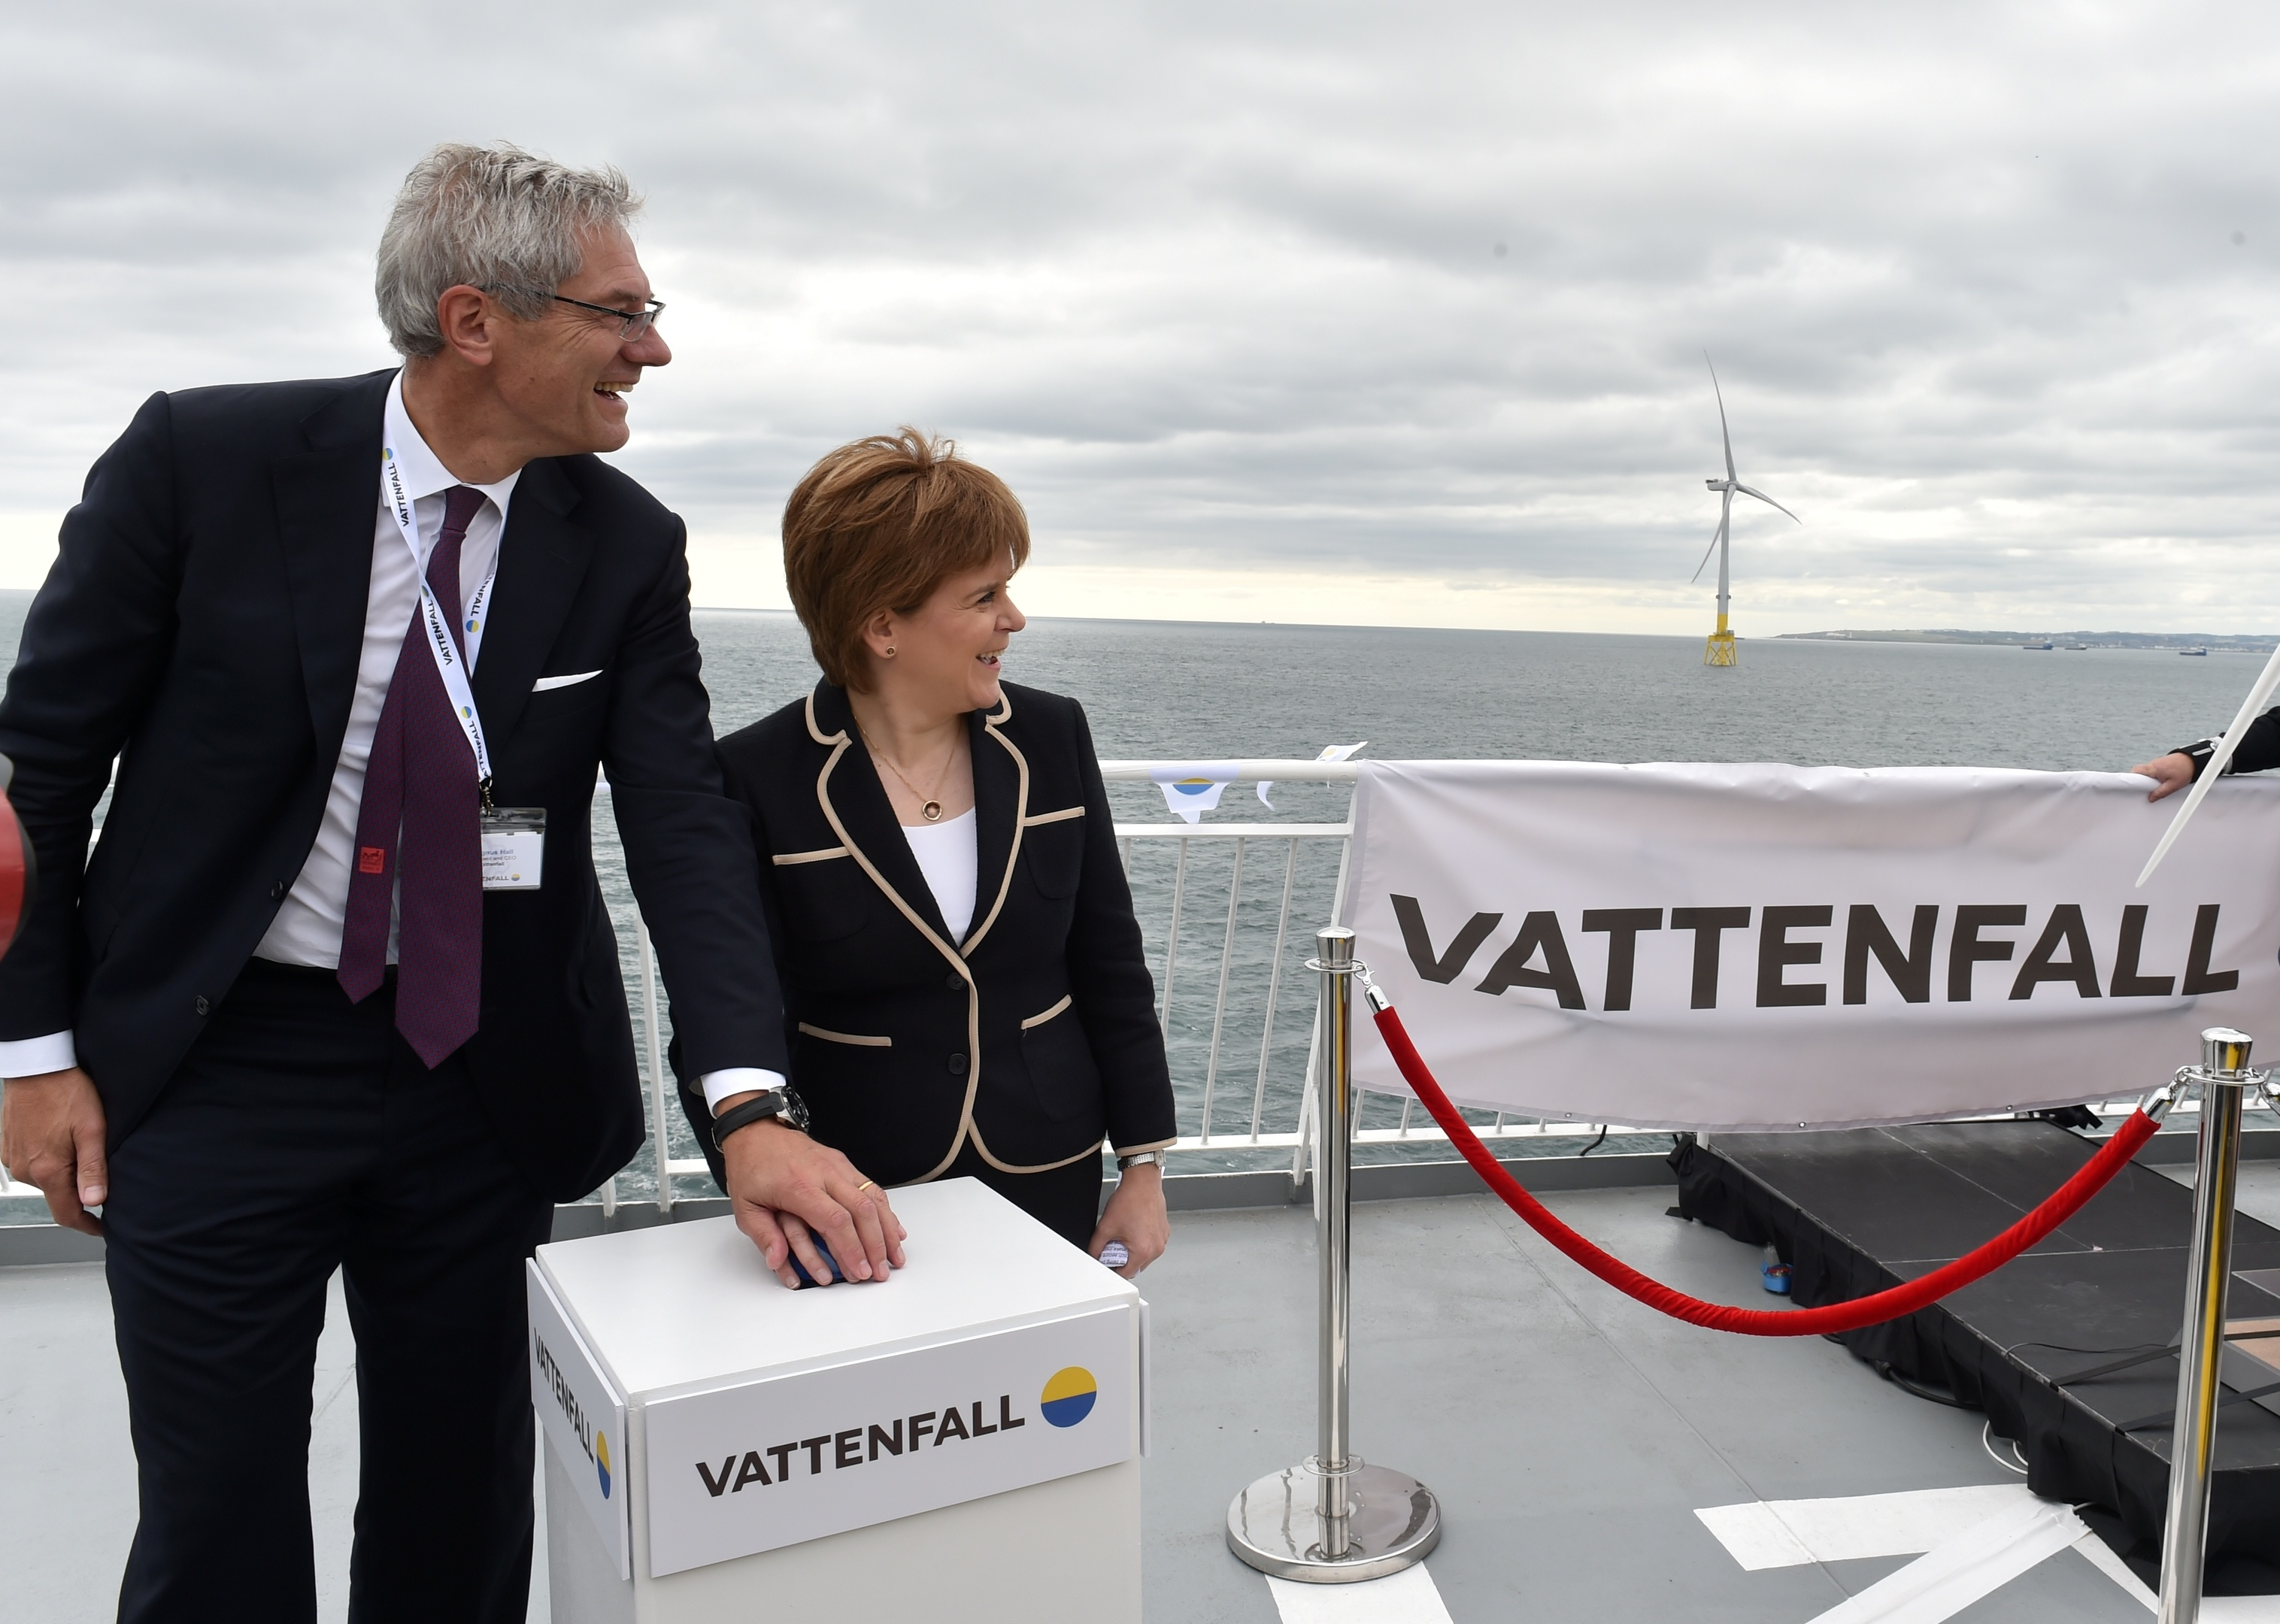 First Minister Nicola Sturgeon officially opened the Vattenfall's 93.2MW facility in Aberdeen. She is with President and Chief Executive officer at Vattenfall, Magnus Hall. Picture by COLIN RENNIE    September 7, 2018.